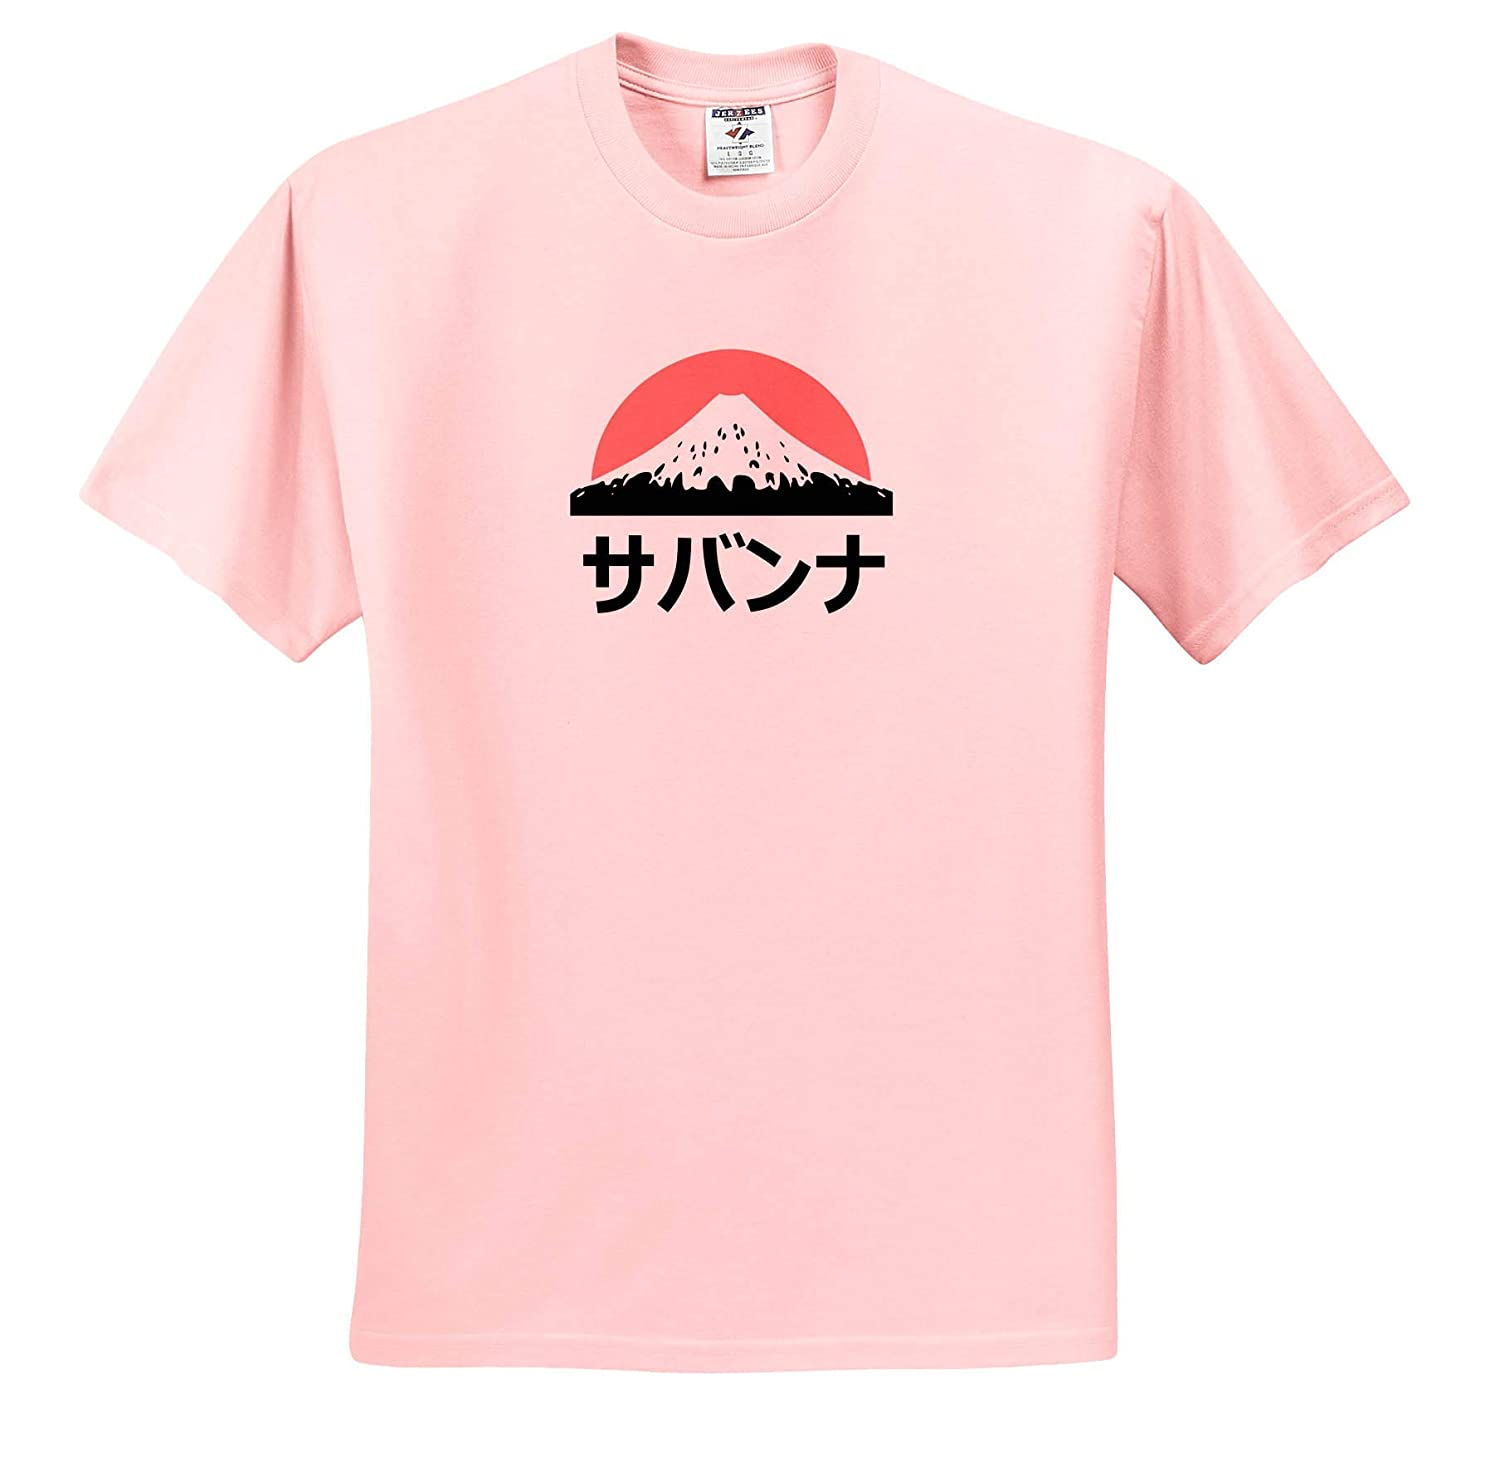 Name in Japanese ts/_320620 Savannah in Japanese Letters 3dRose InspirationzStore Adult T-Shirt XL